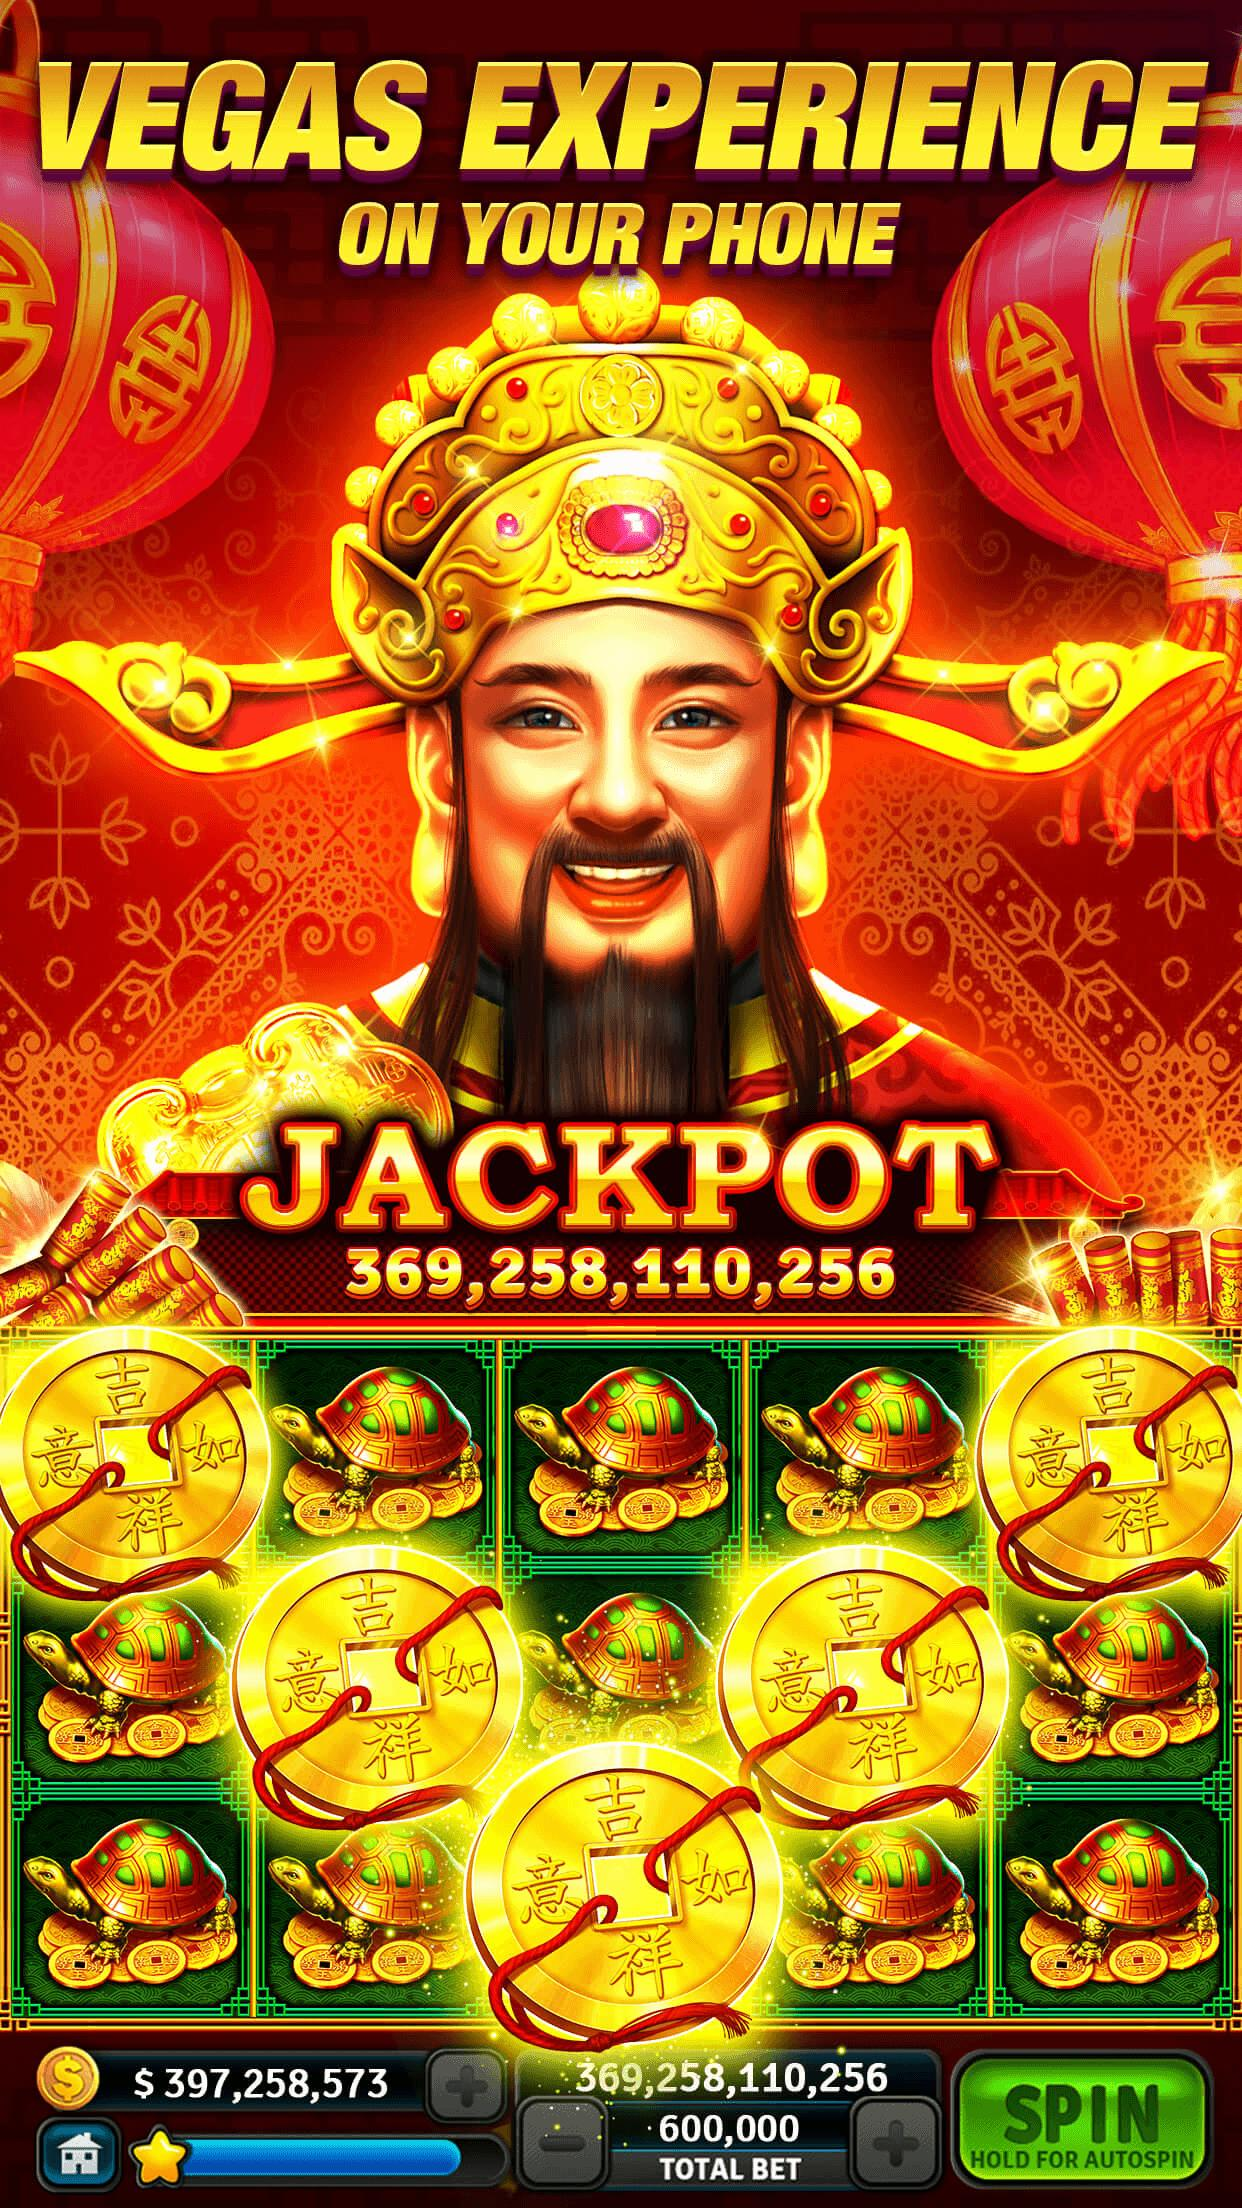 Game id: Play the Free Vegas Slot Machines & Casino Games you love! – At Jackpot Mania Casino games, you can enjoy the world's best mobile slot machines, get lucky and spin like a VIP while receiving daily rewards, mega bonuses and a ,, WELCOME COINS await! Best Vegas casino game experience!